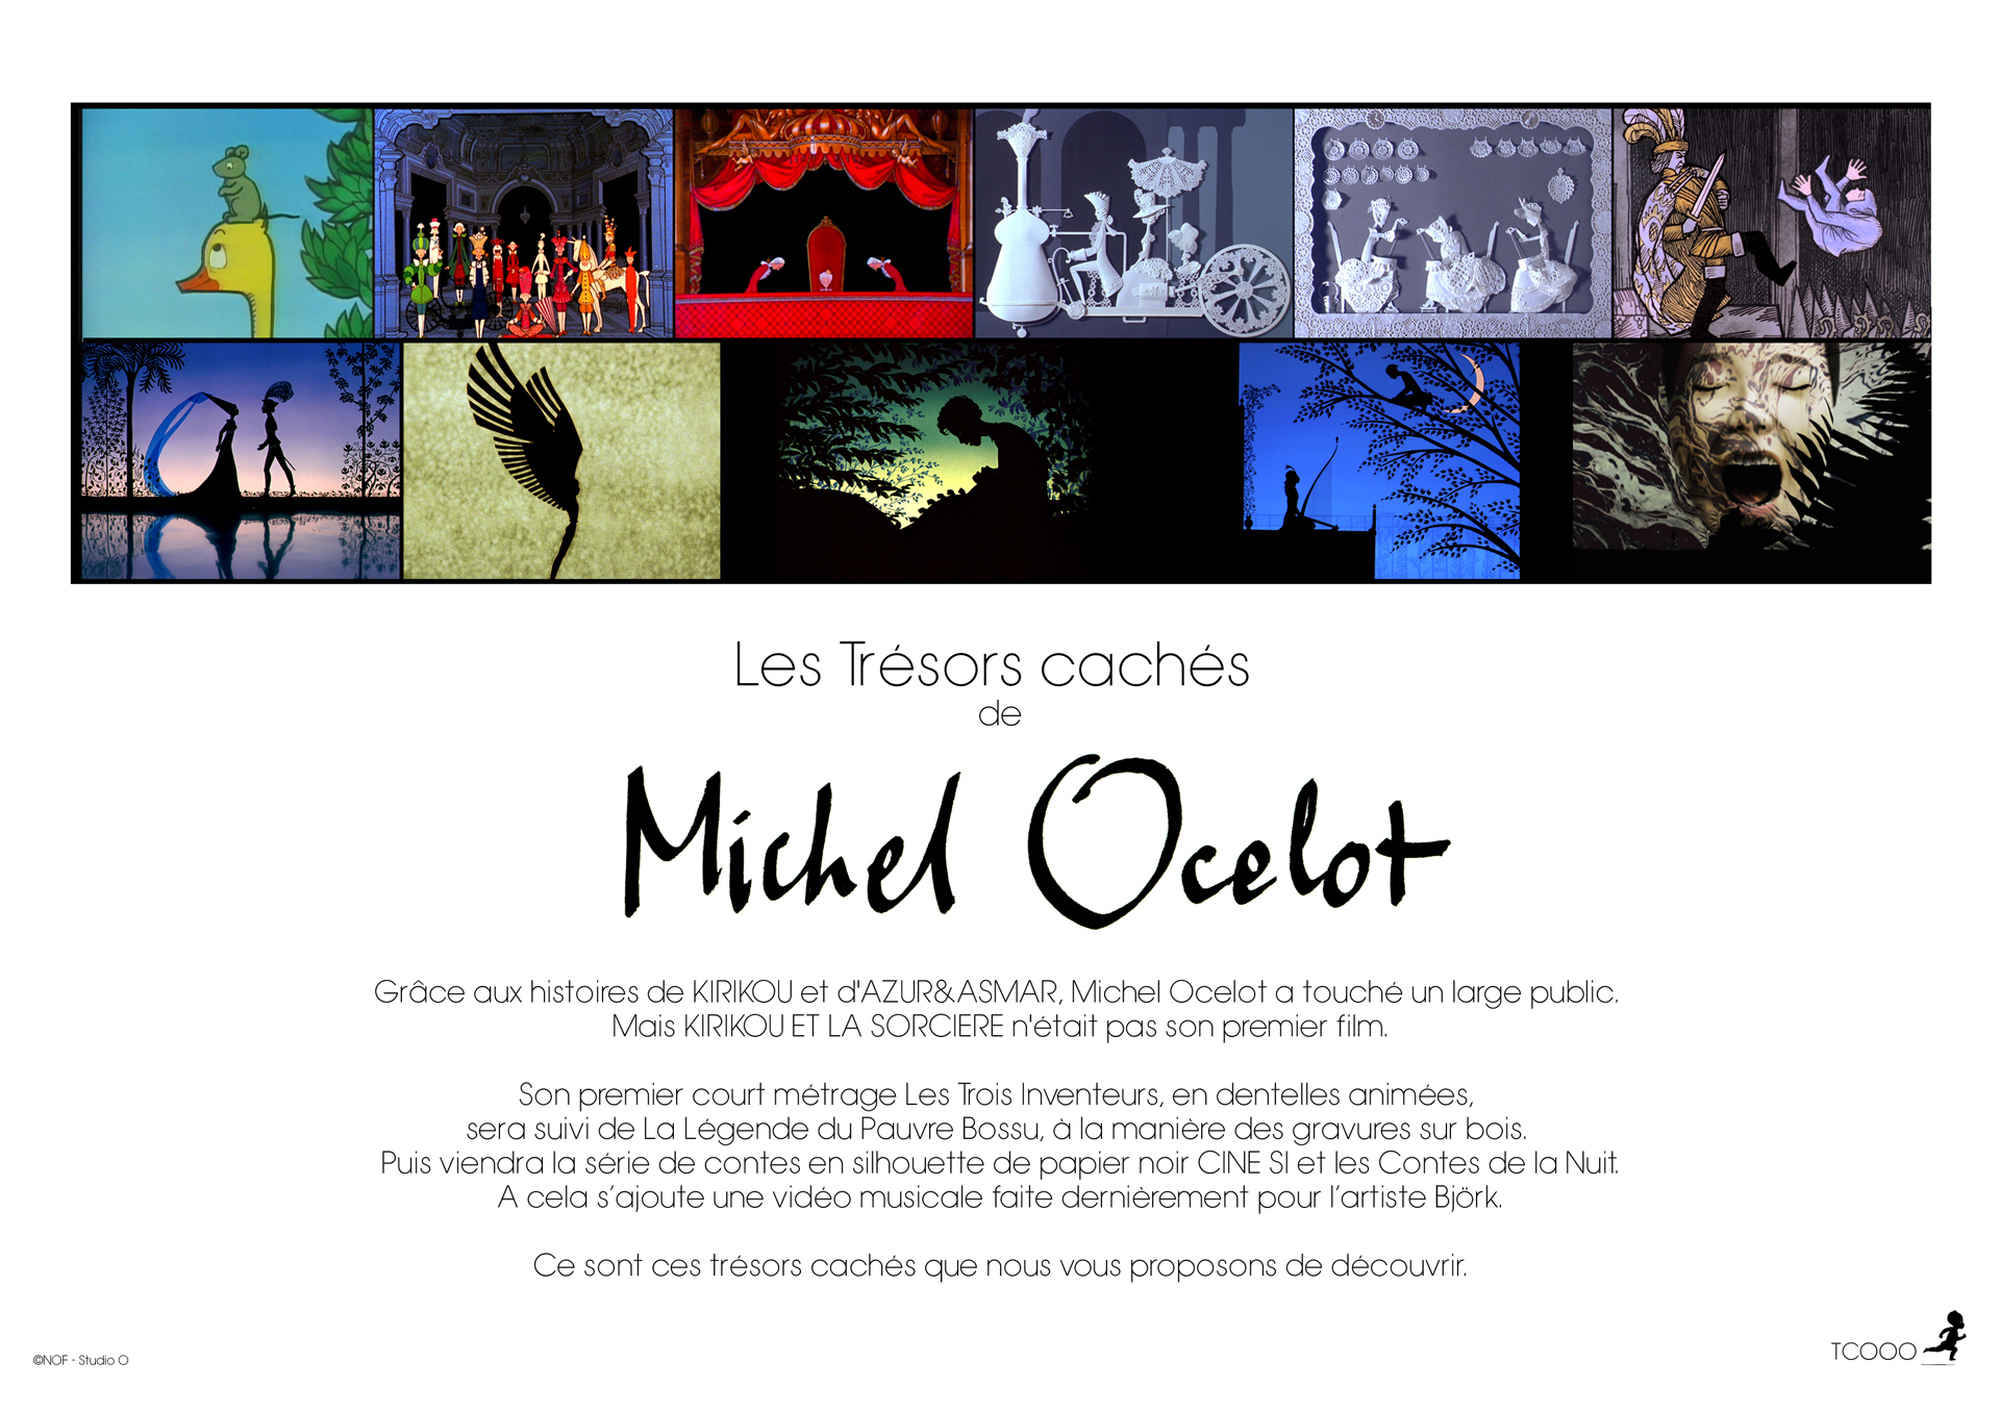 The Hidden Treasures of Michel Ocelot